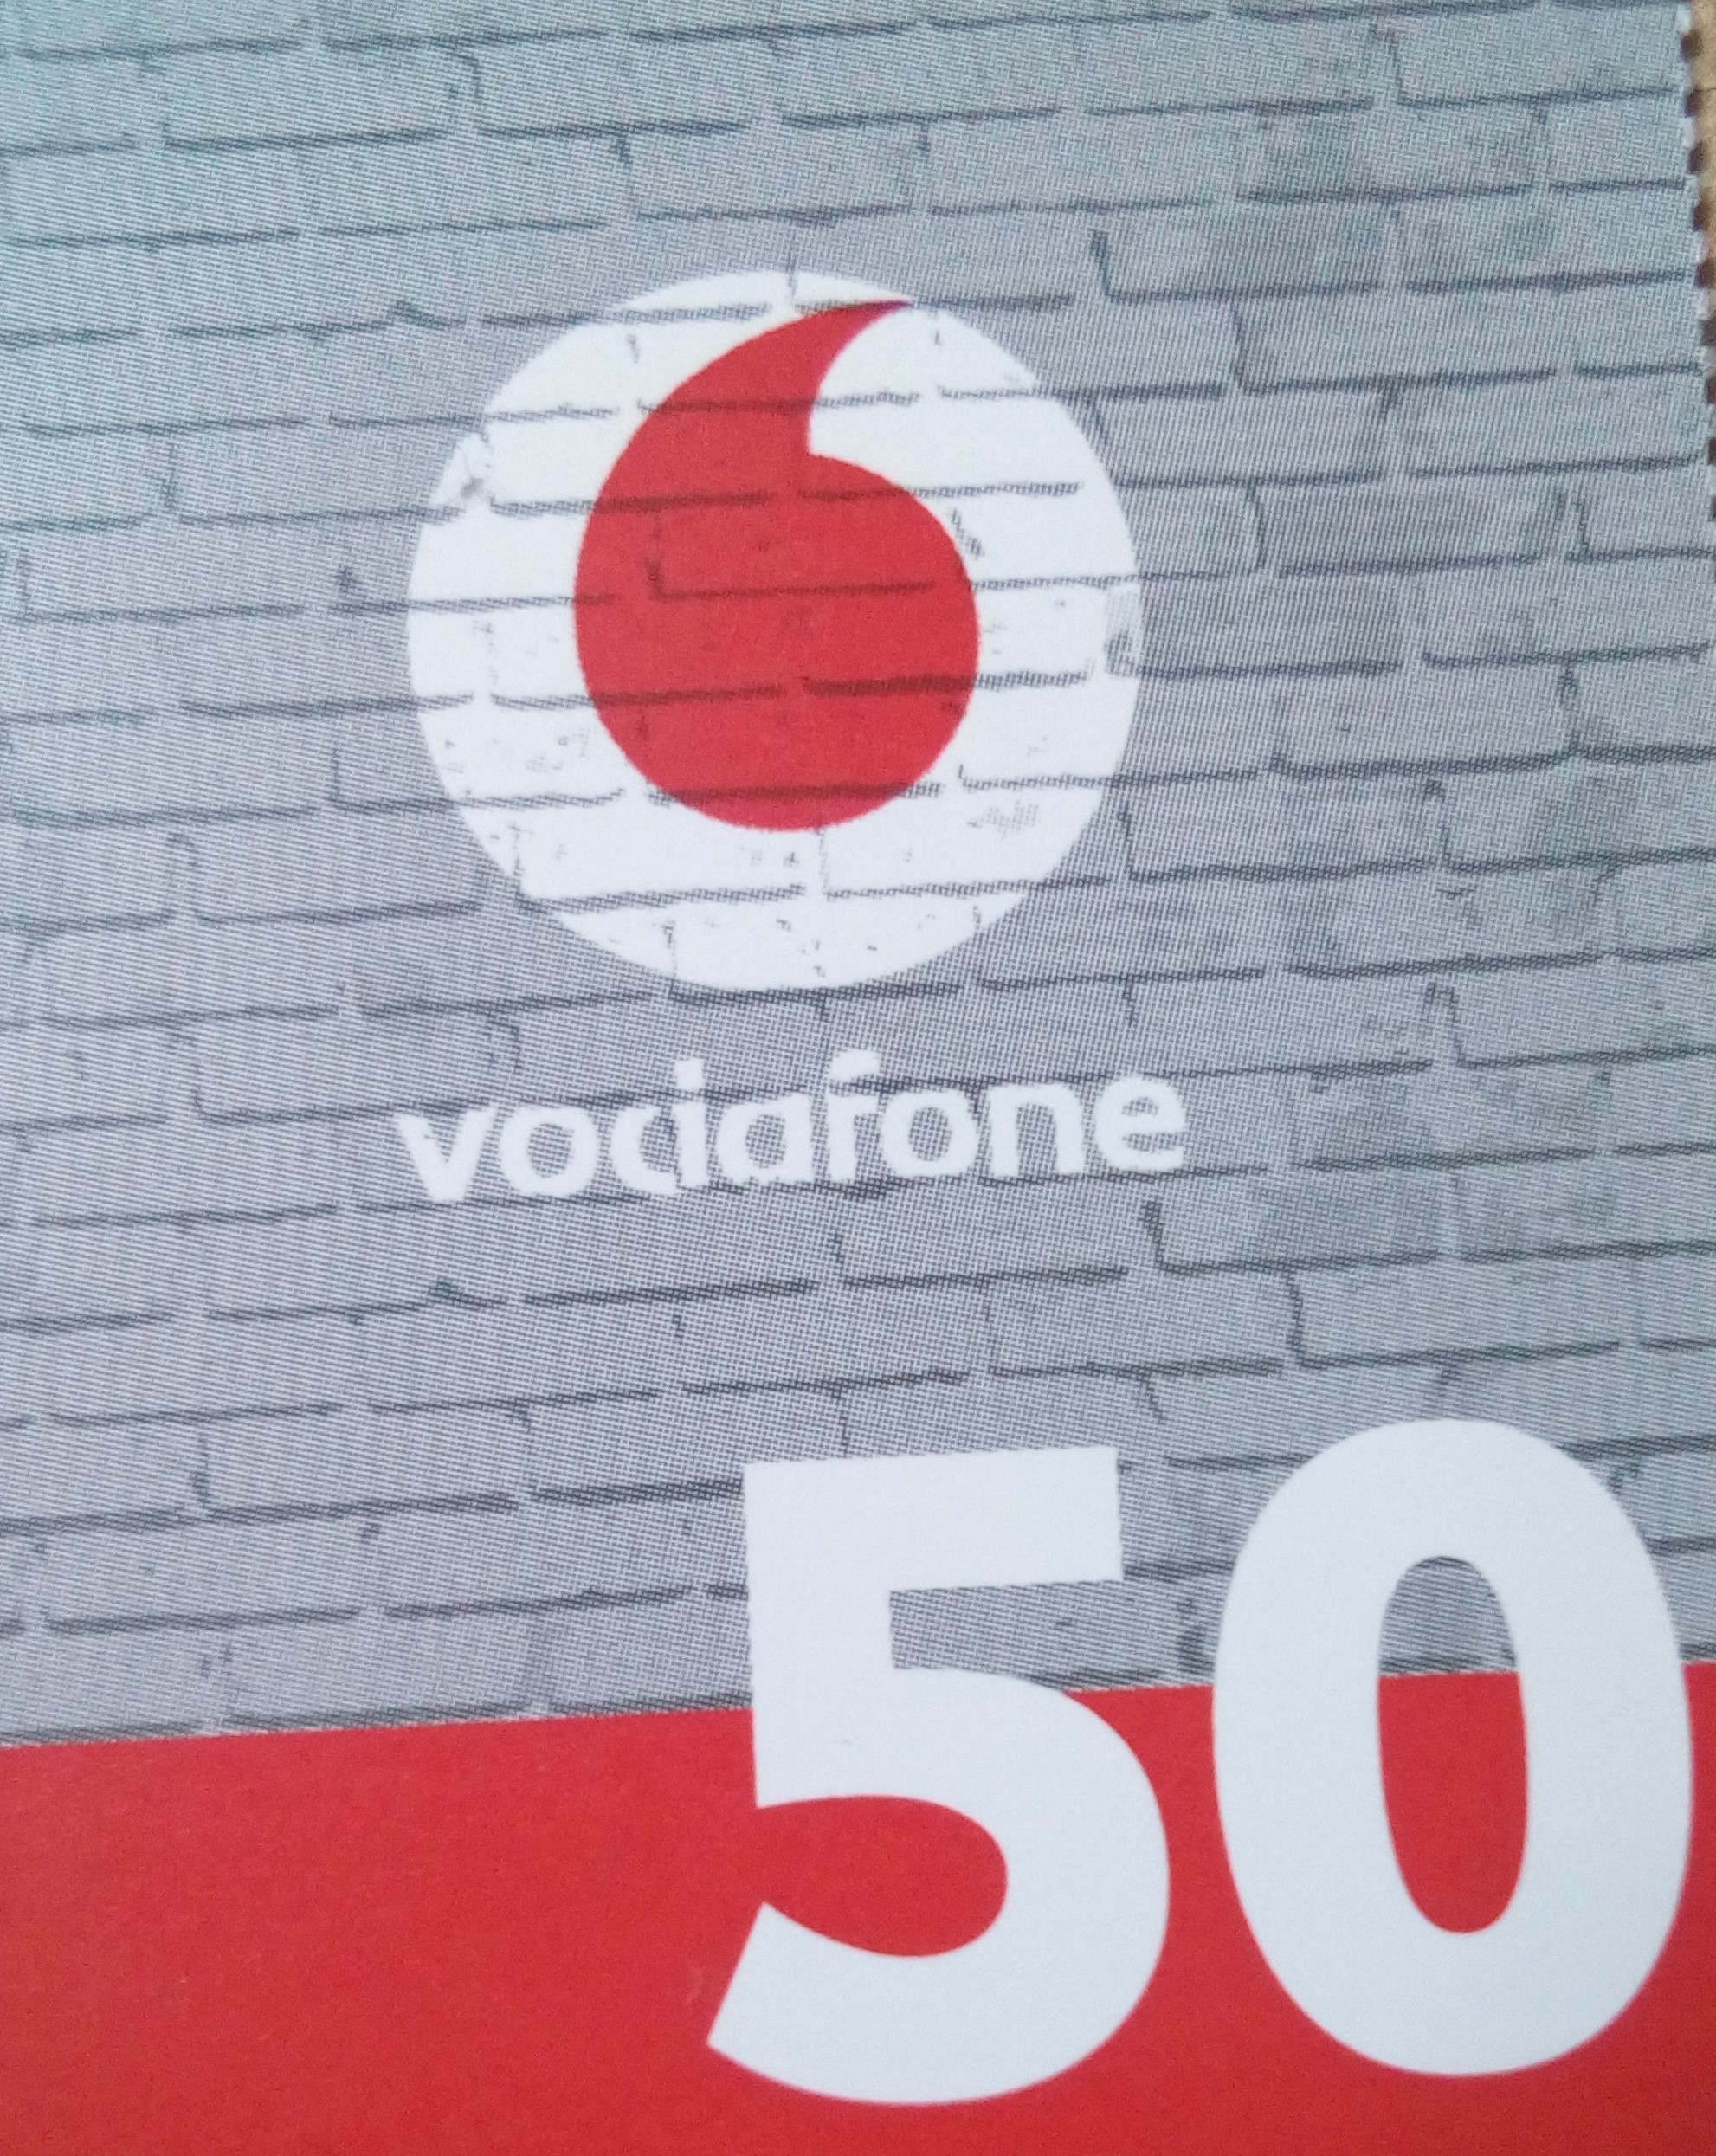 MTS.ua-vodafone.ua-50 UAH. PIN (pin) -code scratch card